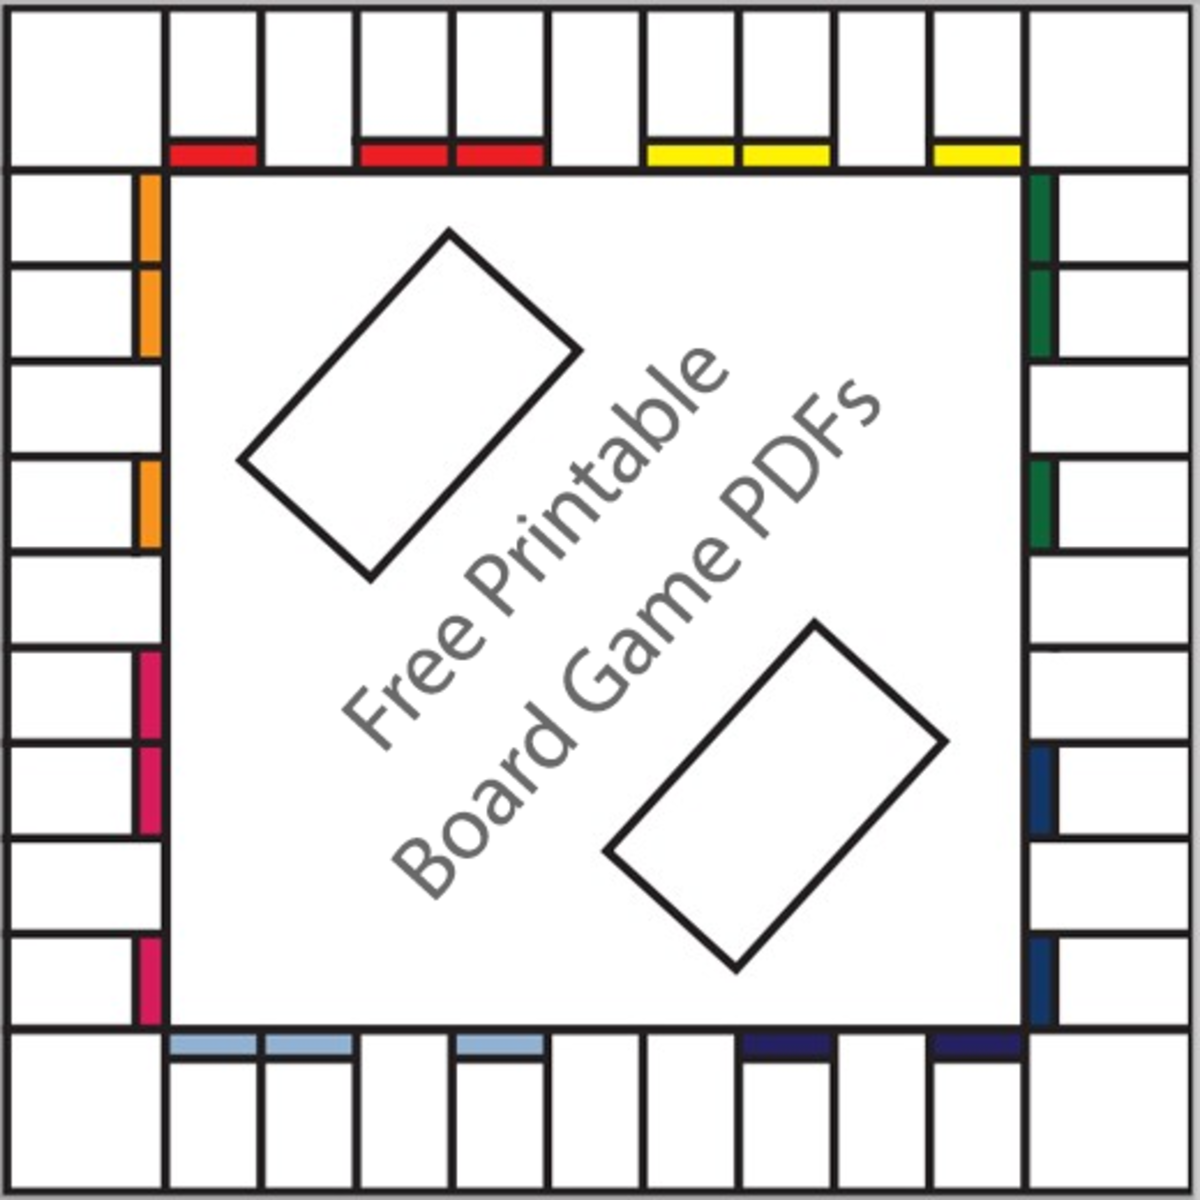 16 Free Printable Board Game Templates Hubpages: make your own 3d shapes online